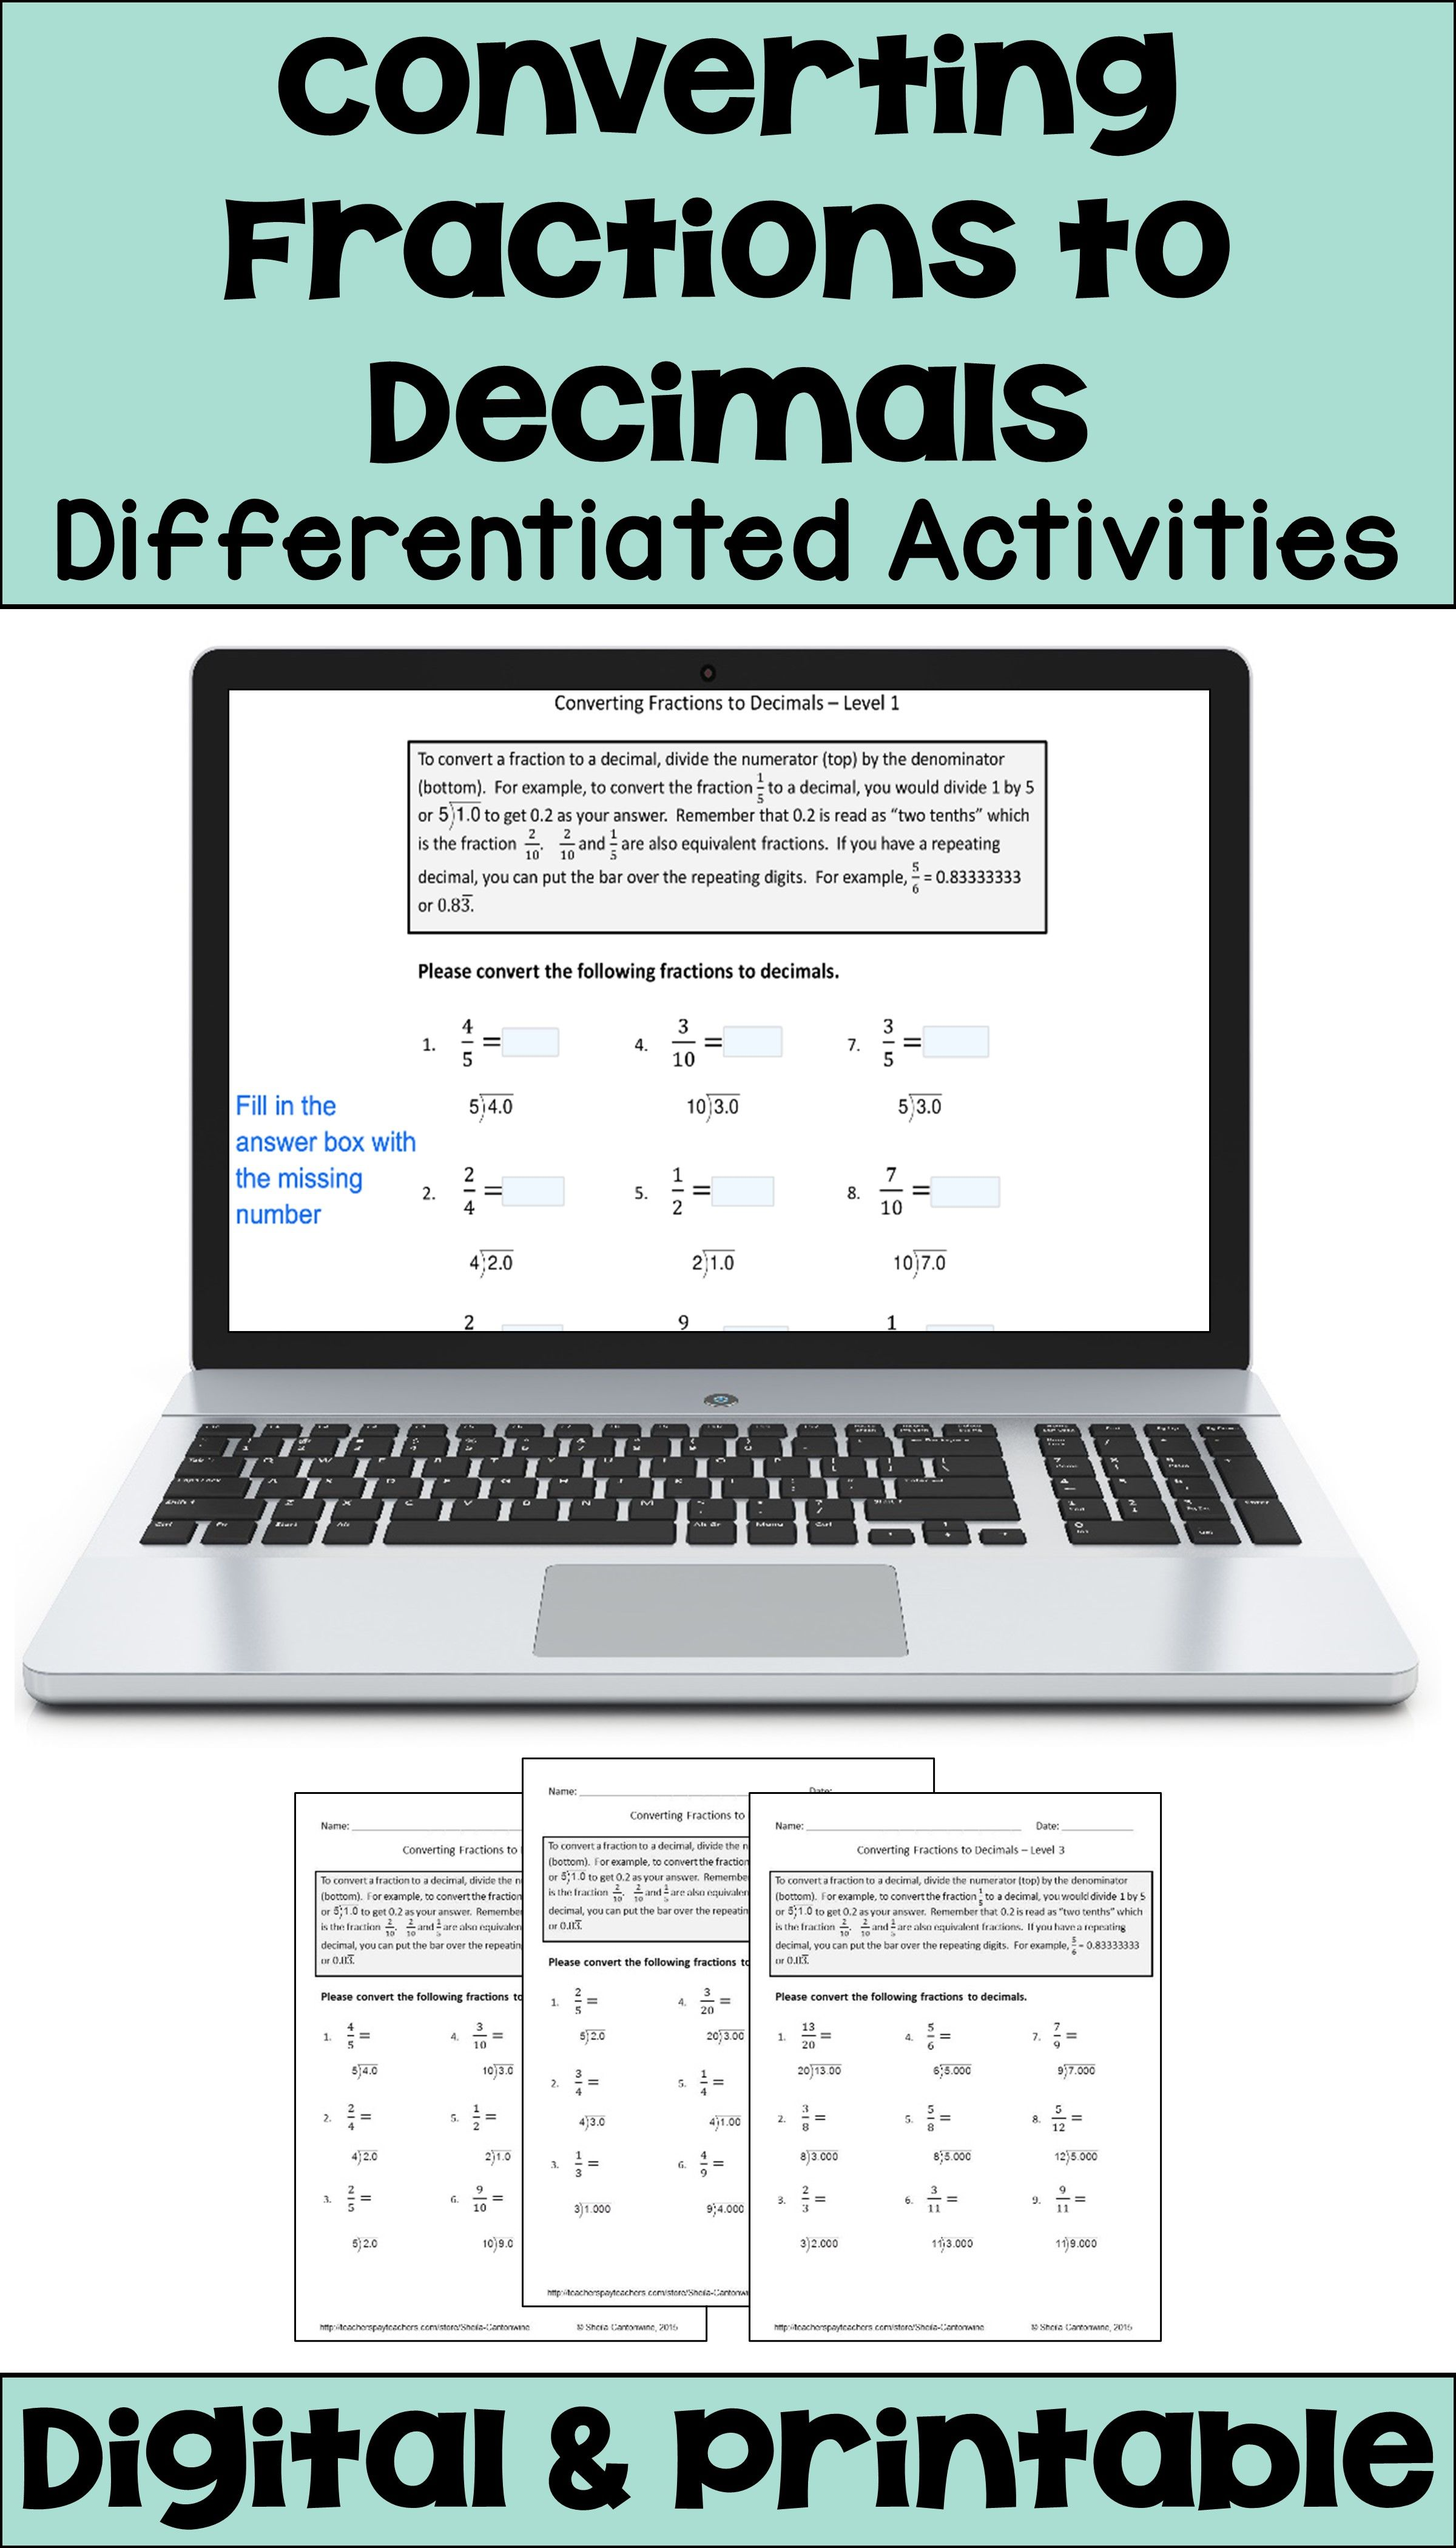 Converting Fractions to Decimals Differentiated Activities with Digital and  Printable Opti… in 2020   Converting fractions [ 4200 x 2400 Pixel ]